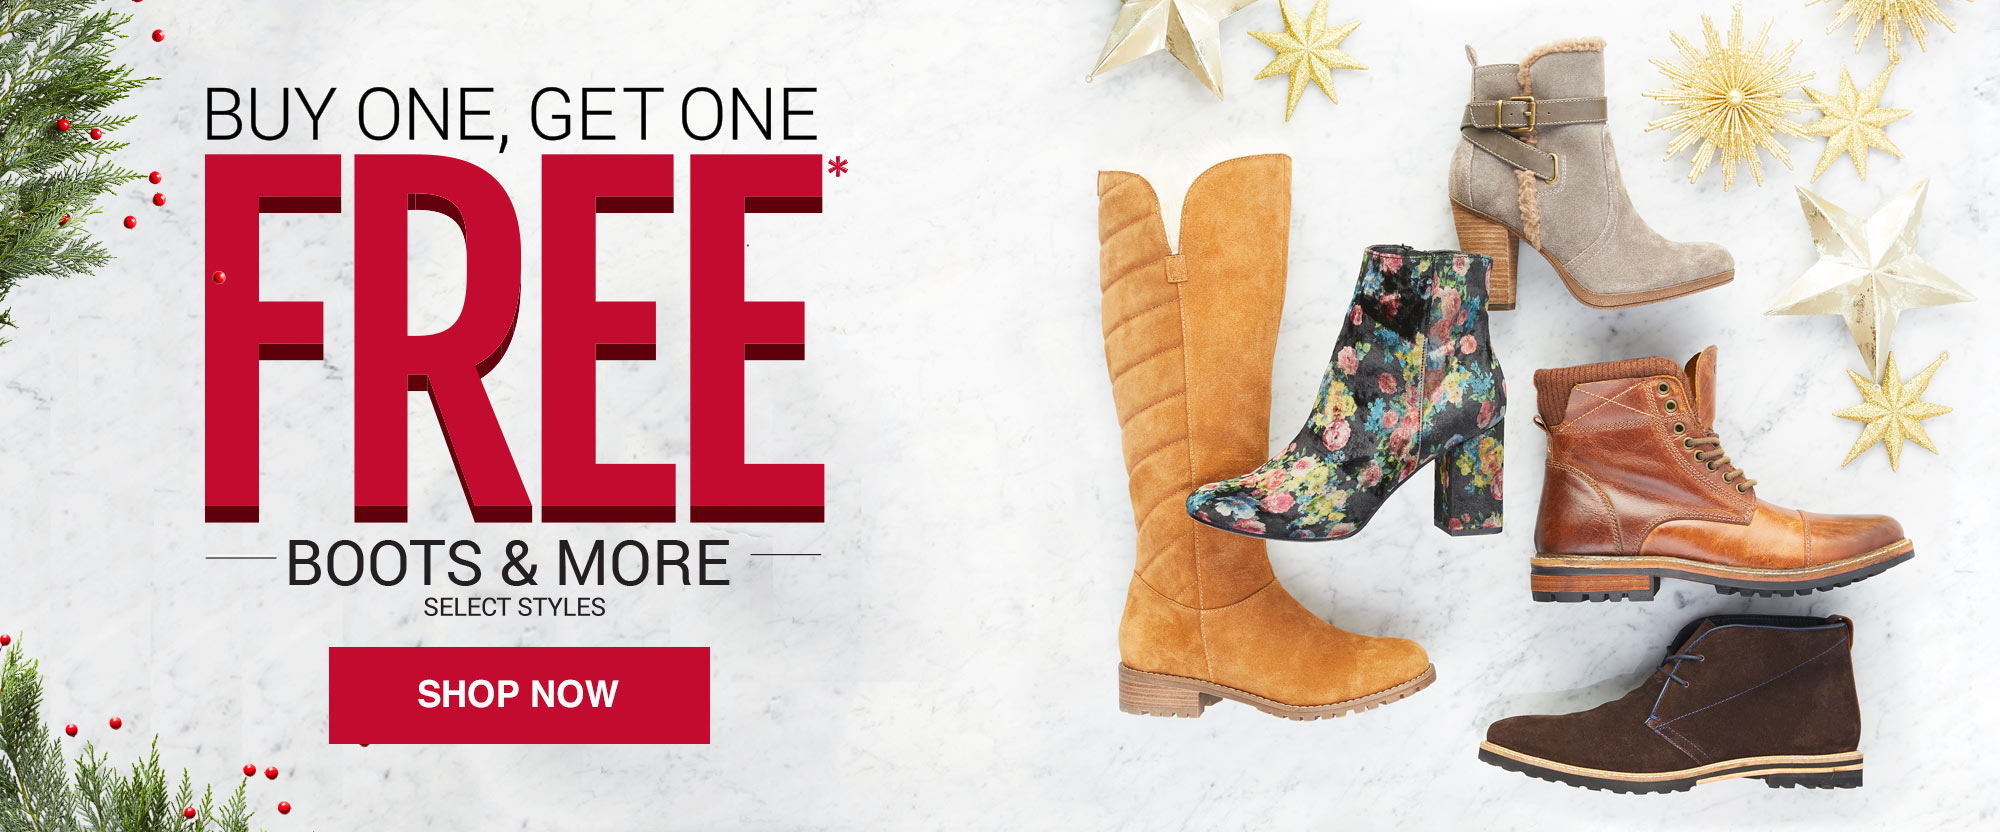 BUY ONE, GET ONE FREE BOOTS AND MORE!